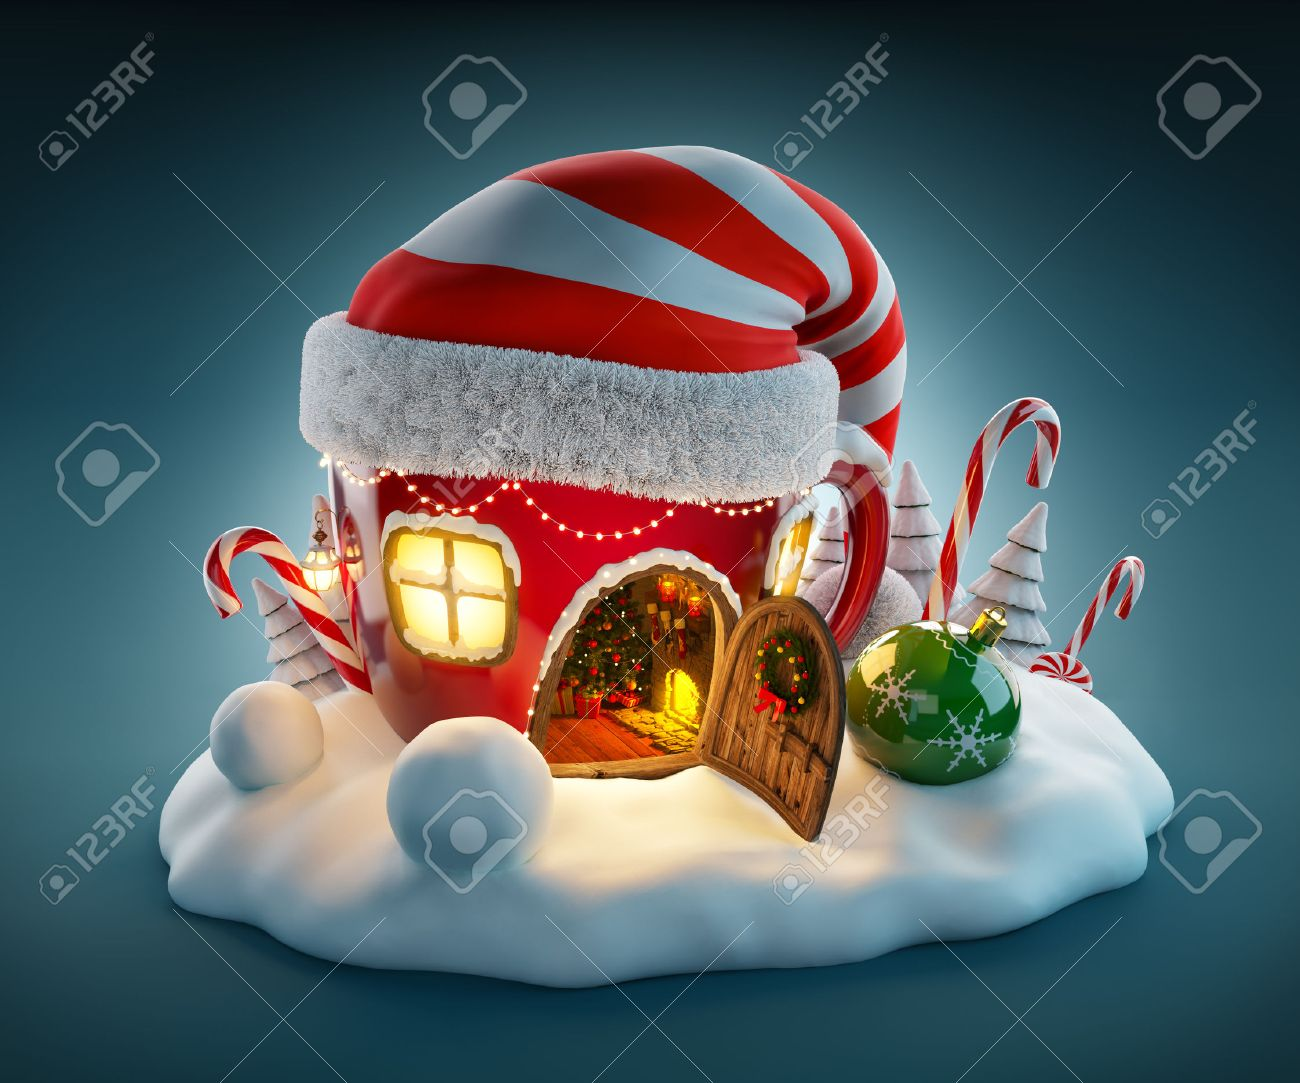 Amazing fairy house in elfs hat decorated at christmas in shape of tea cup with opened door and fireplace inside. Unusual christmas illustration. Stock Illustration - 46807306